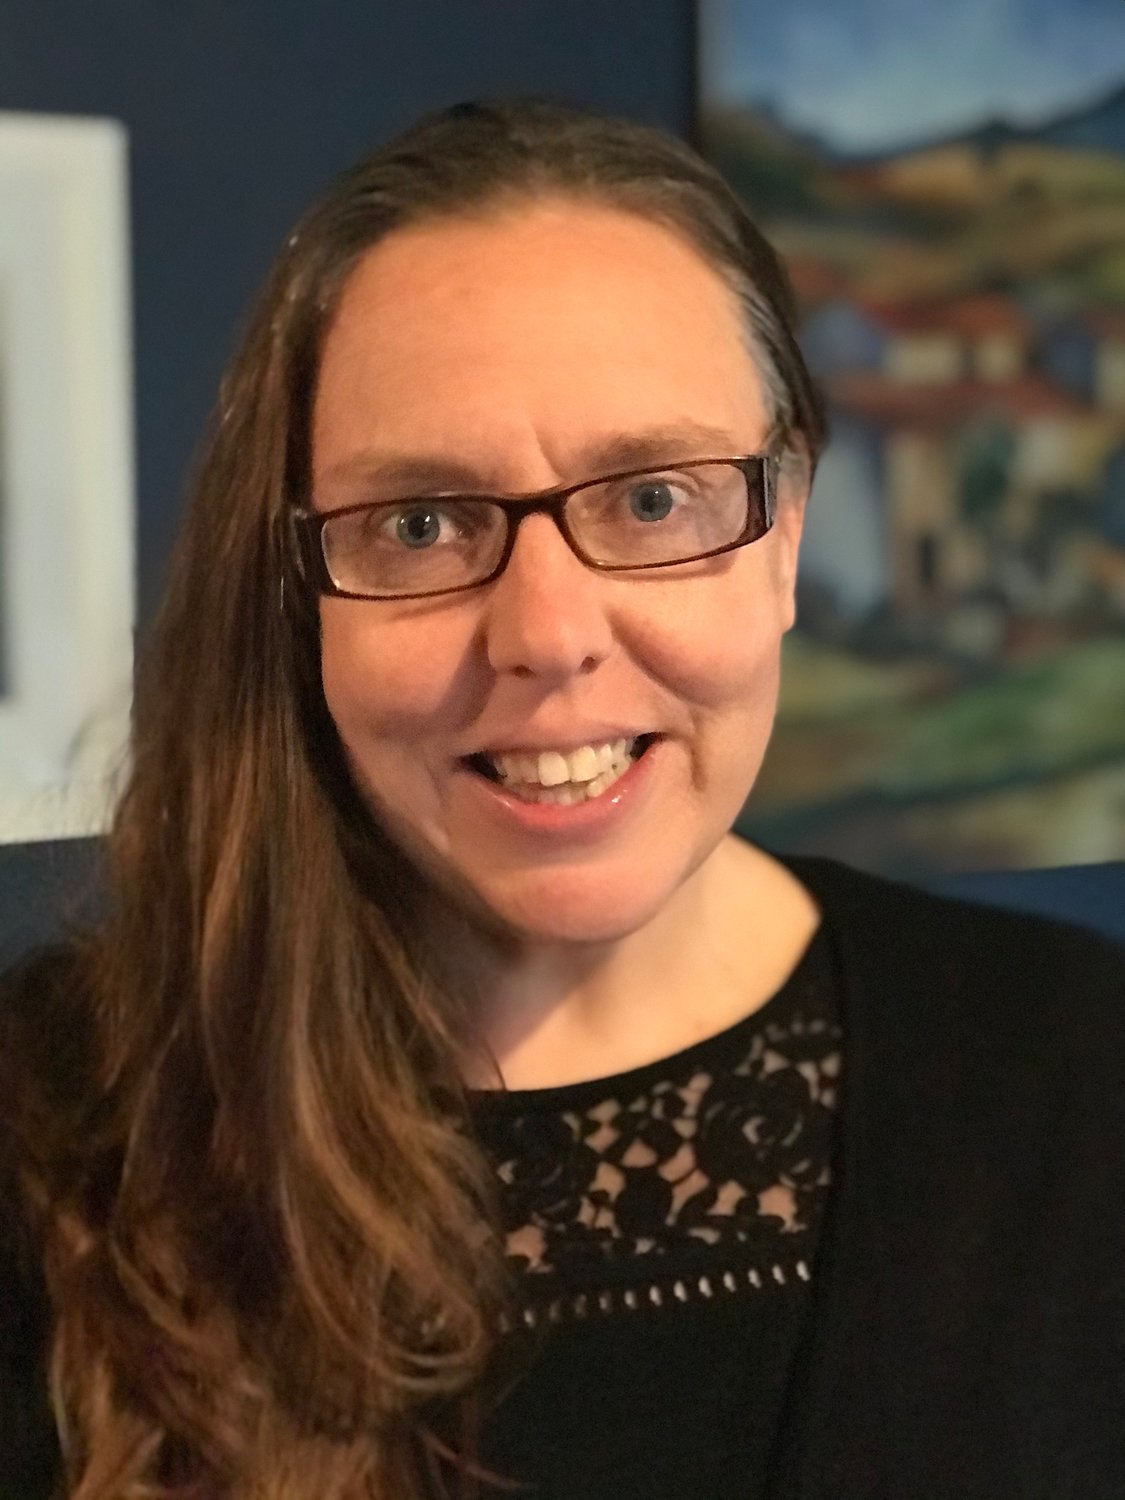 Samantha Hedden, a teacher at St. Philomena School, is one of only 15 educators nationwide to be chosen to work with National History Day and the Library of Congress to write and test a series of five student guides.